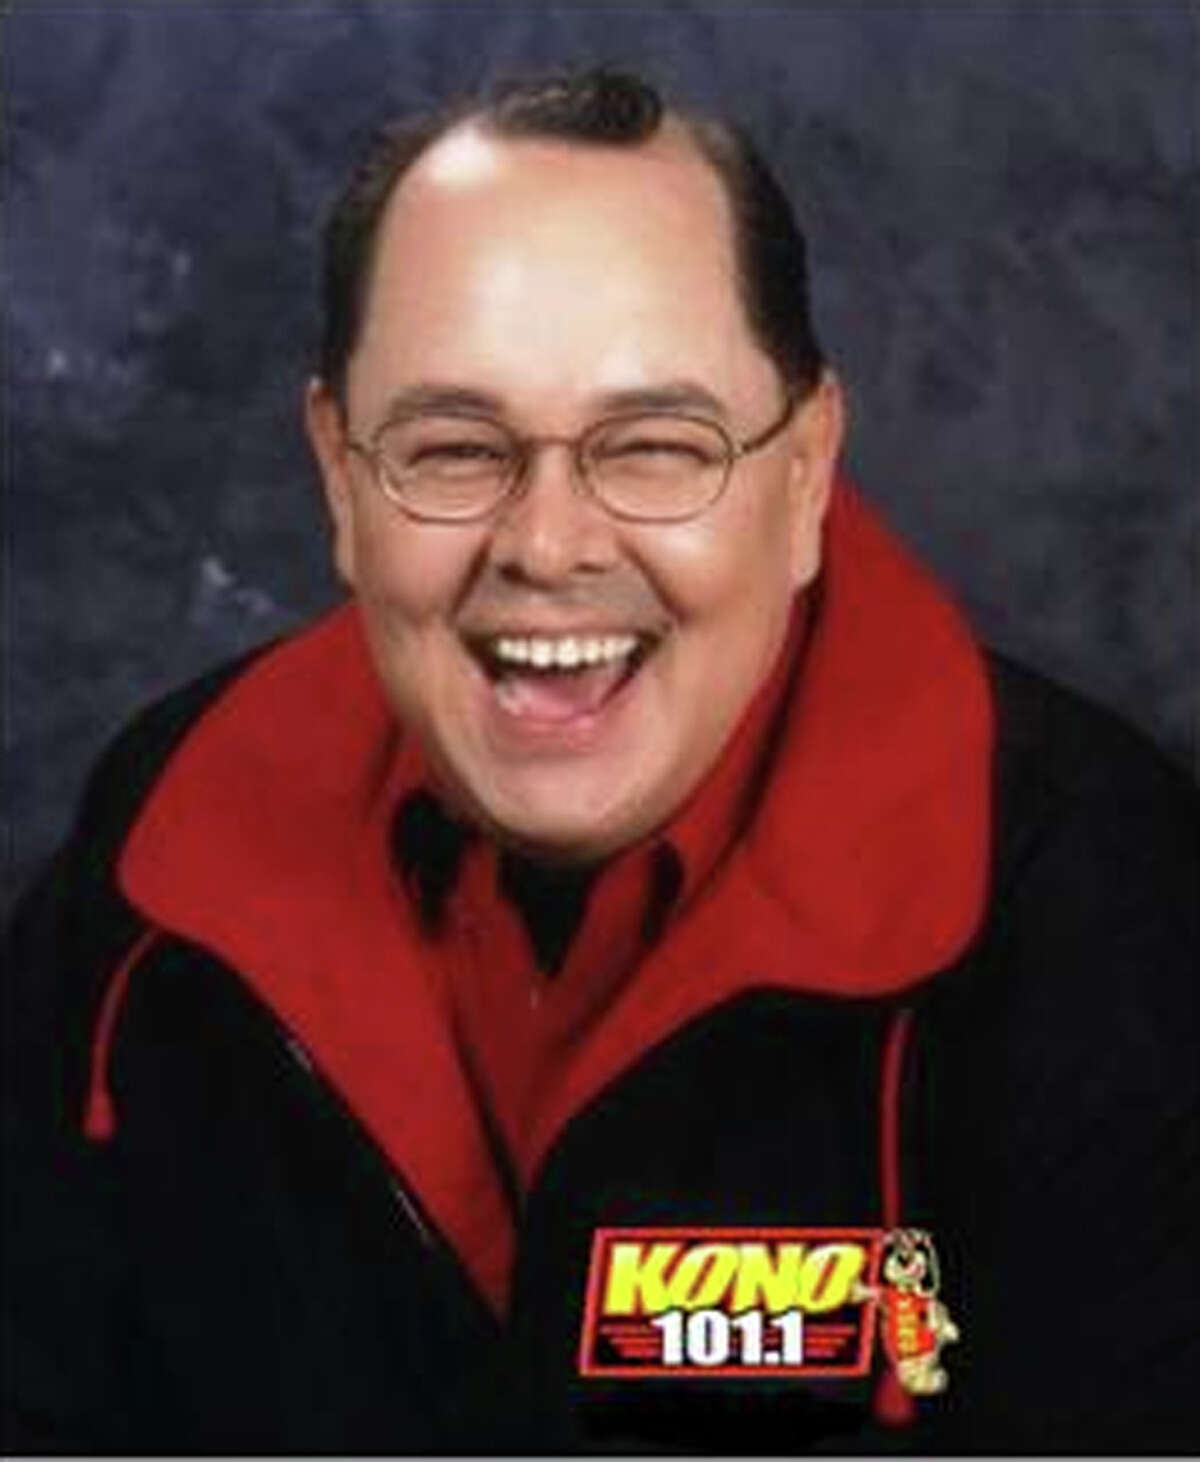 KONO radio host Dave Rios was the gold-medal winner for local radio personality/team.